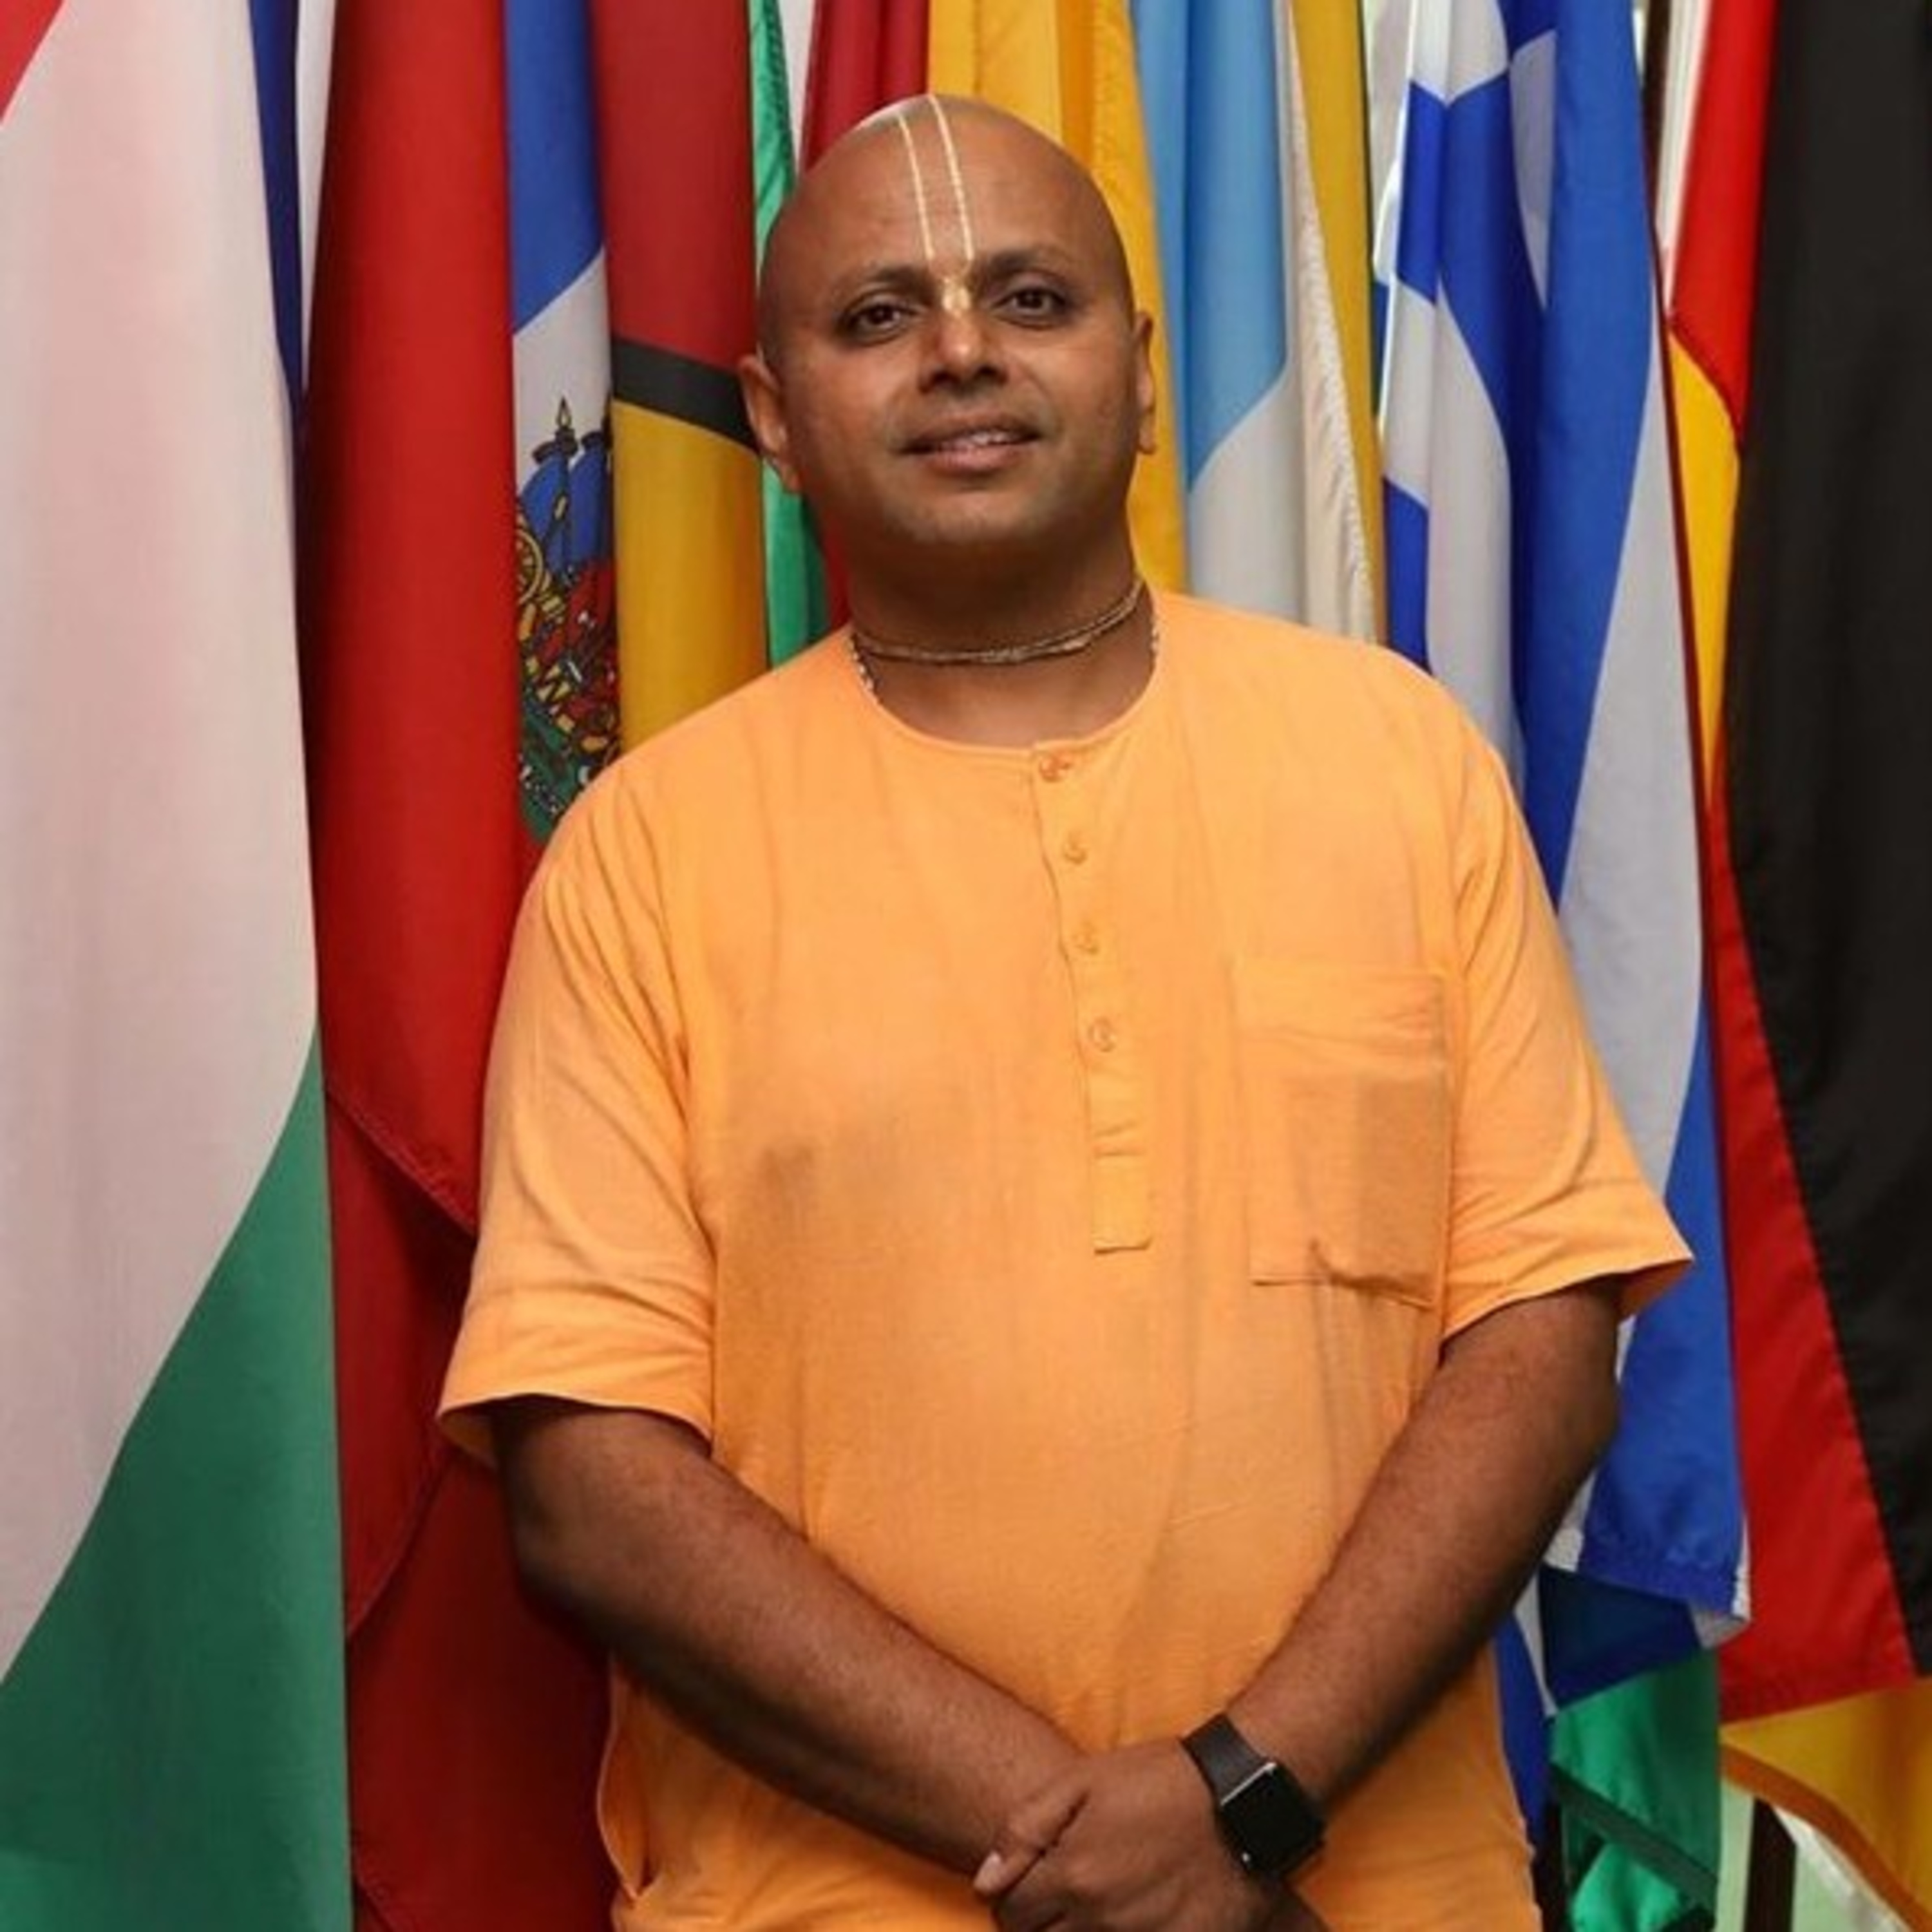 @Gaur Gopal Das On Deep Life Lessons, Relationships & Stories from Monk Life